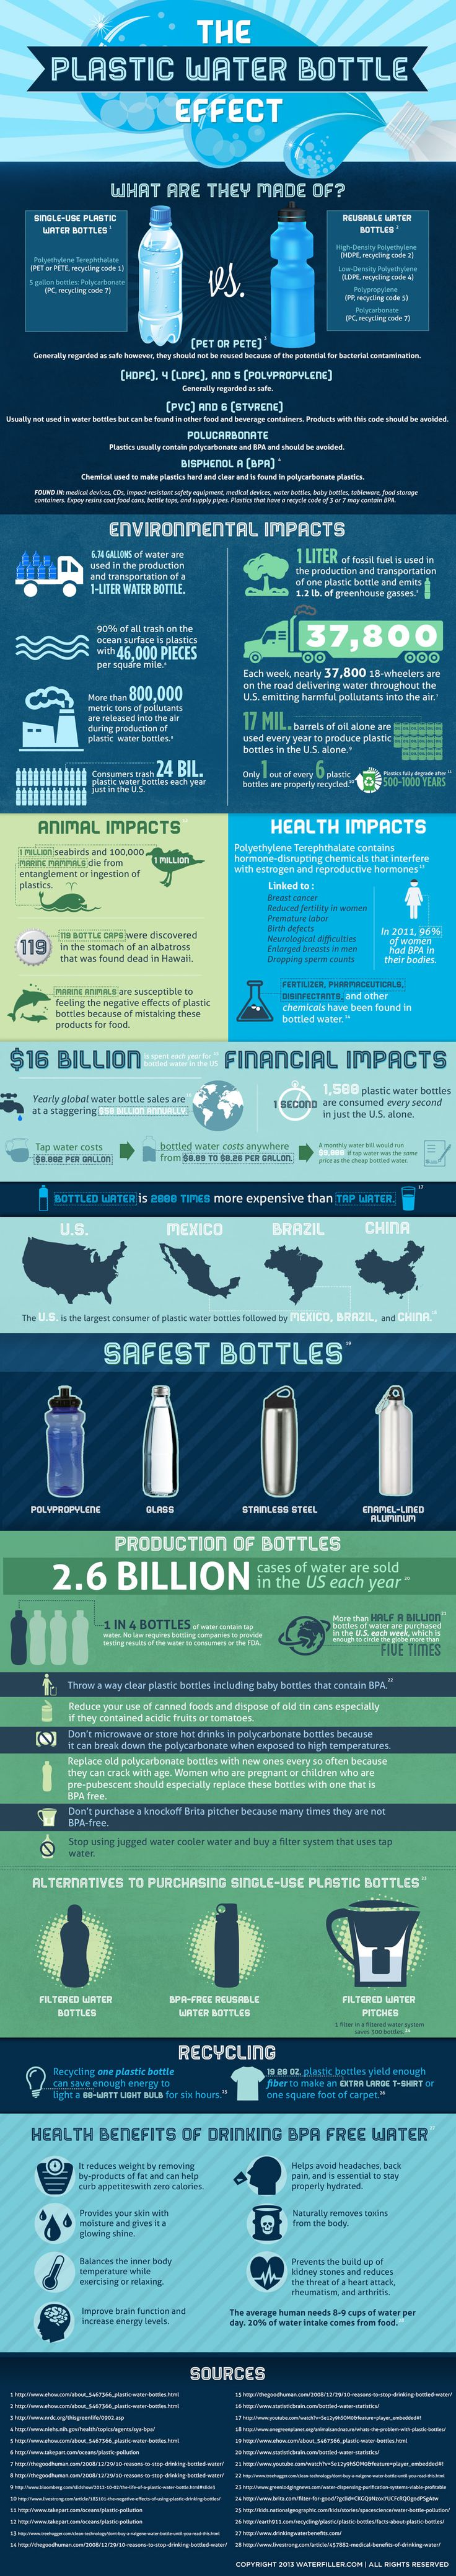 This shows the plastic water bottle effect. this shows how much of an effect water bottles can have on the economy and how much better it is to use reusable bottles. it also points out how 1 out of 6 bottles are recycled properly.